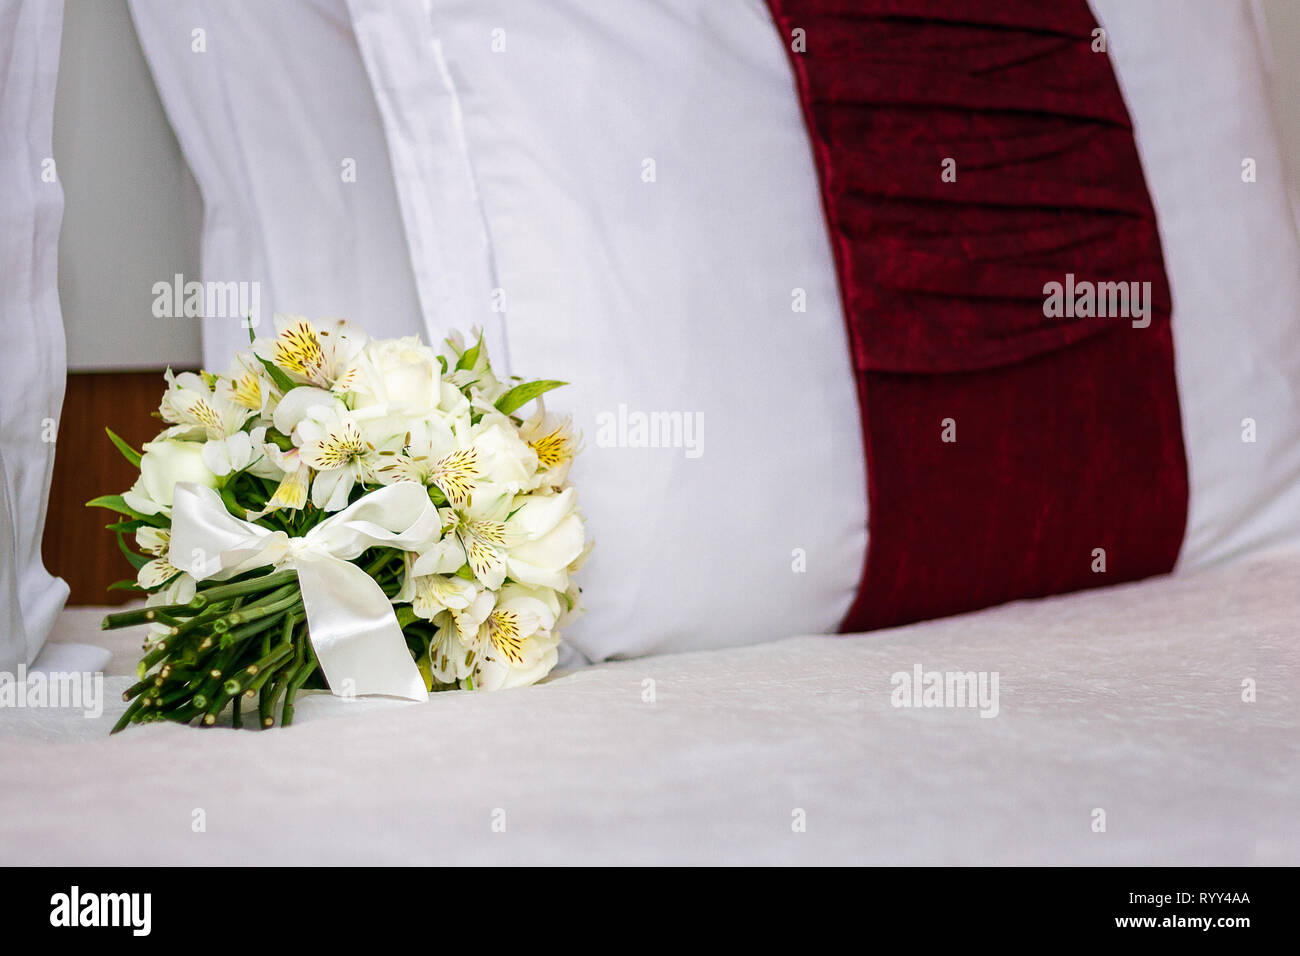 White Wedding Bouquet On The Bed White Wedding Flowers On Bed Romantic Image Stock Photo Alamy